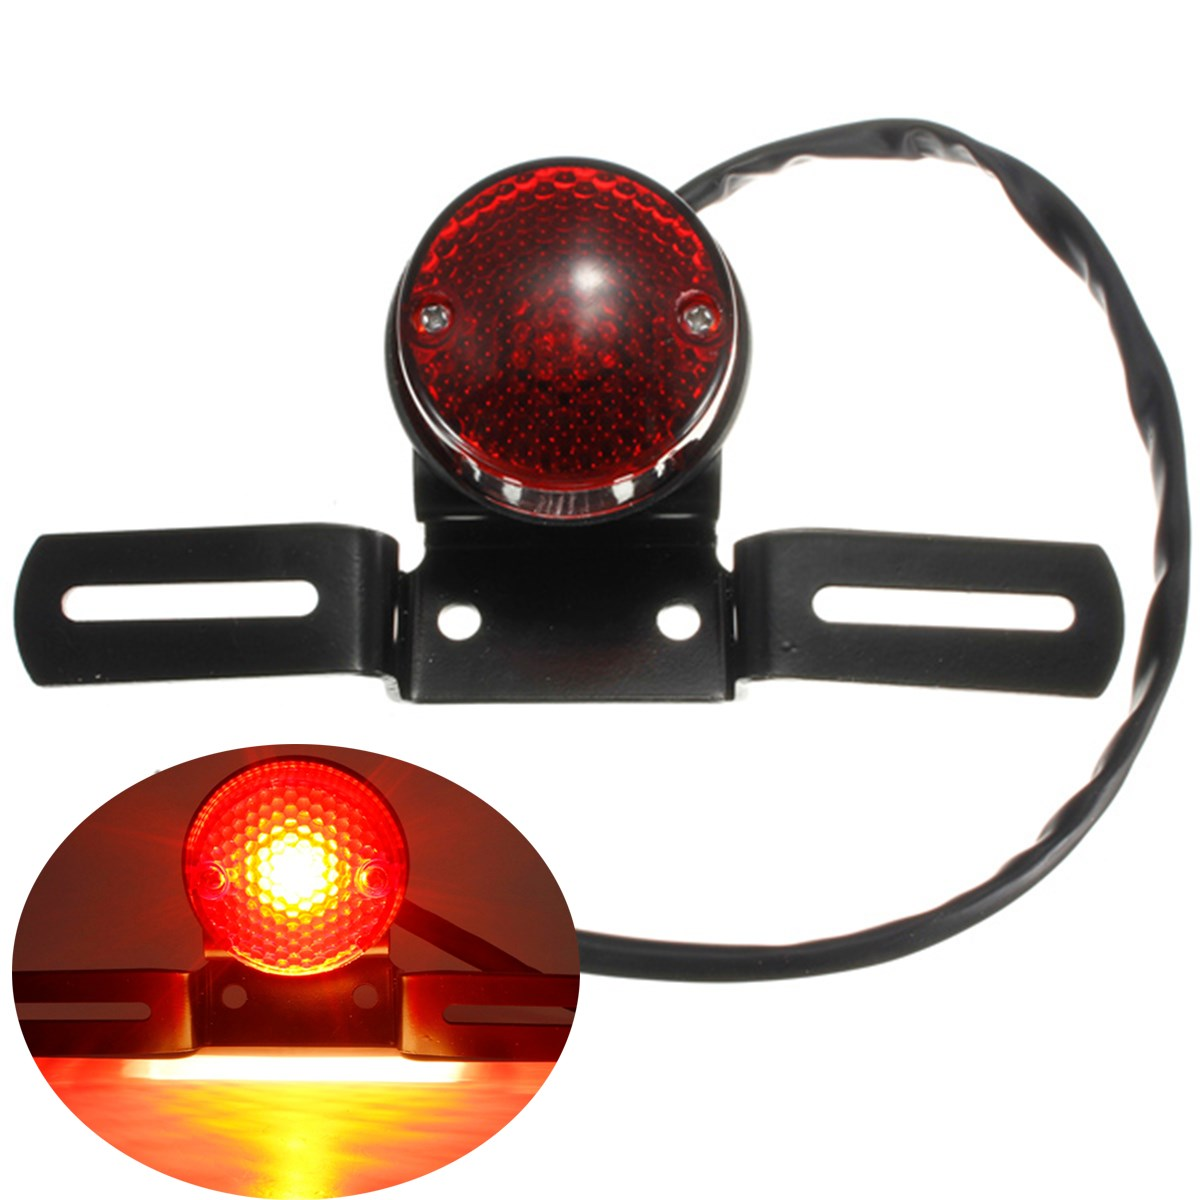 Motorcycle Bike Rear Tail Brake Stop Number Plate Light For Harley For Chopper/Bobber